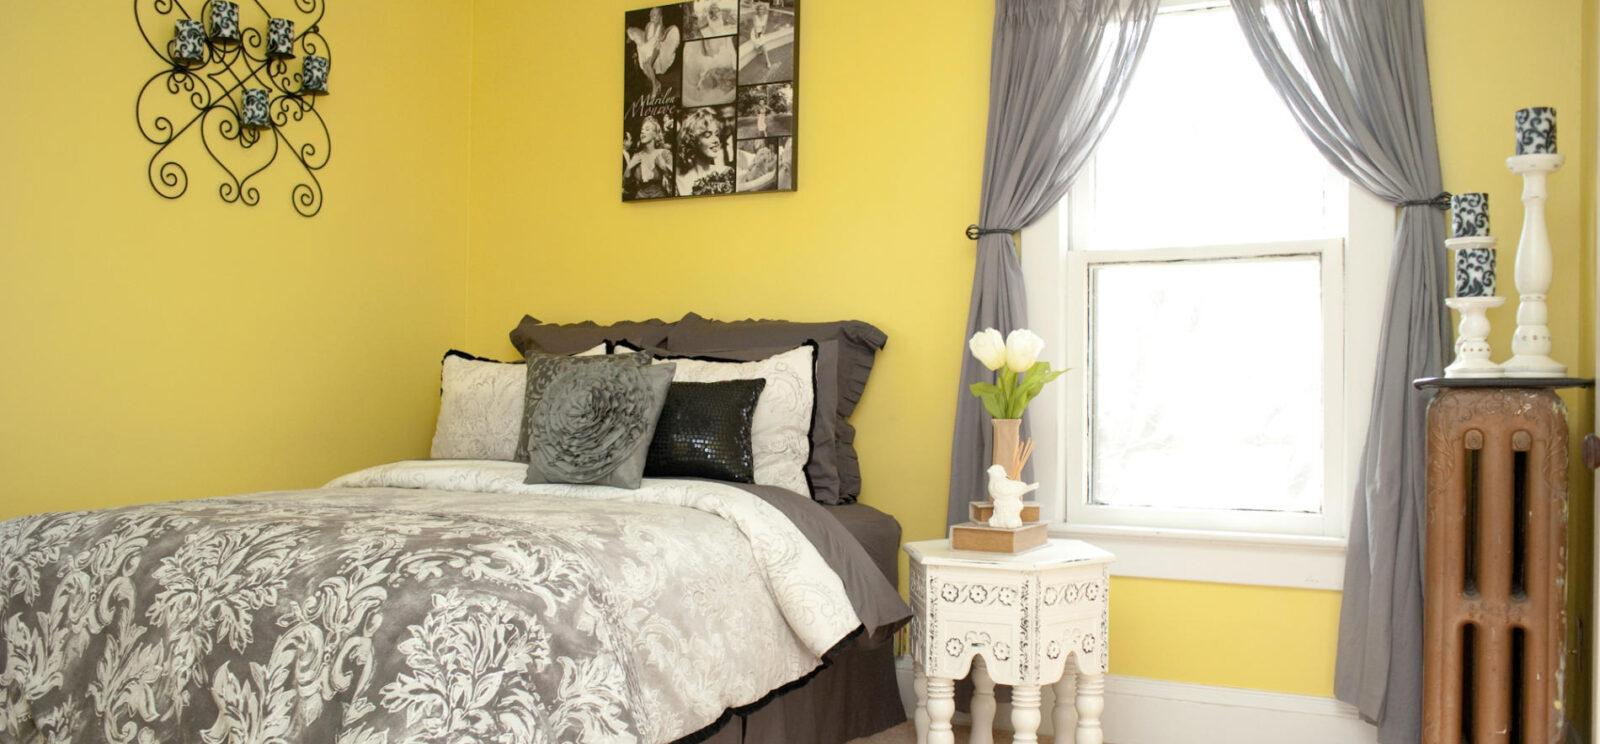 Sumptuous Design Yellow Bedroom Ideas Home Design Hgihomes intended for Master Bedroom Yellow - Man 17